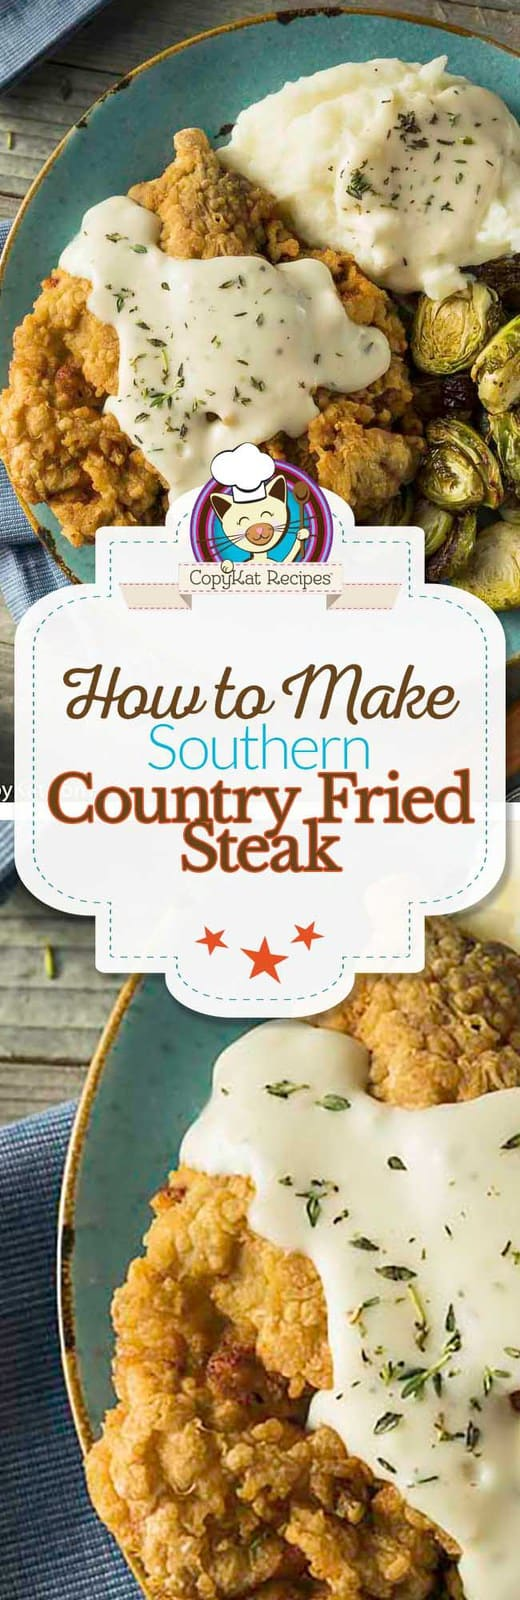 Recreate this classic Southern Chicken Fried Steak at home.